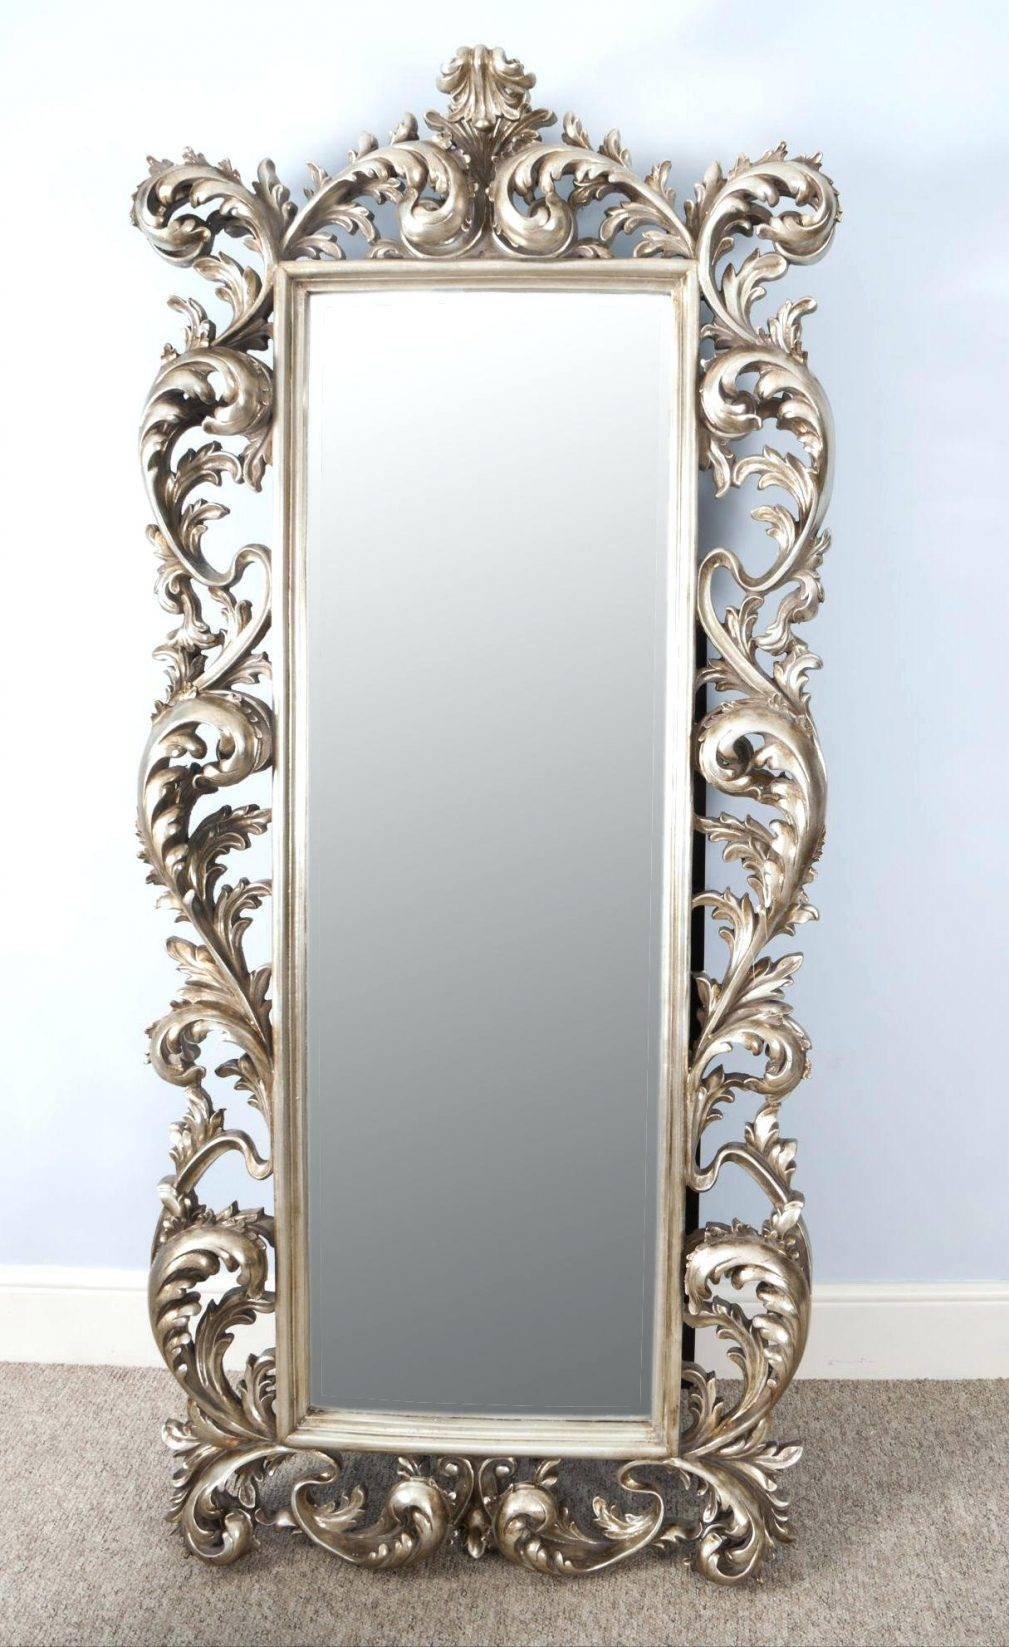 Massive Wall Mirrors - Amlvideo | Marvellous Mirror Ideas To with Massive Wall Mirrors (Image 23 of 25)